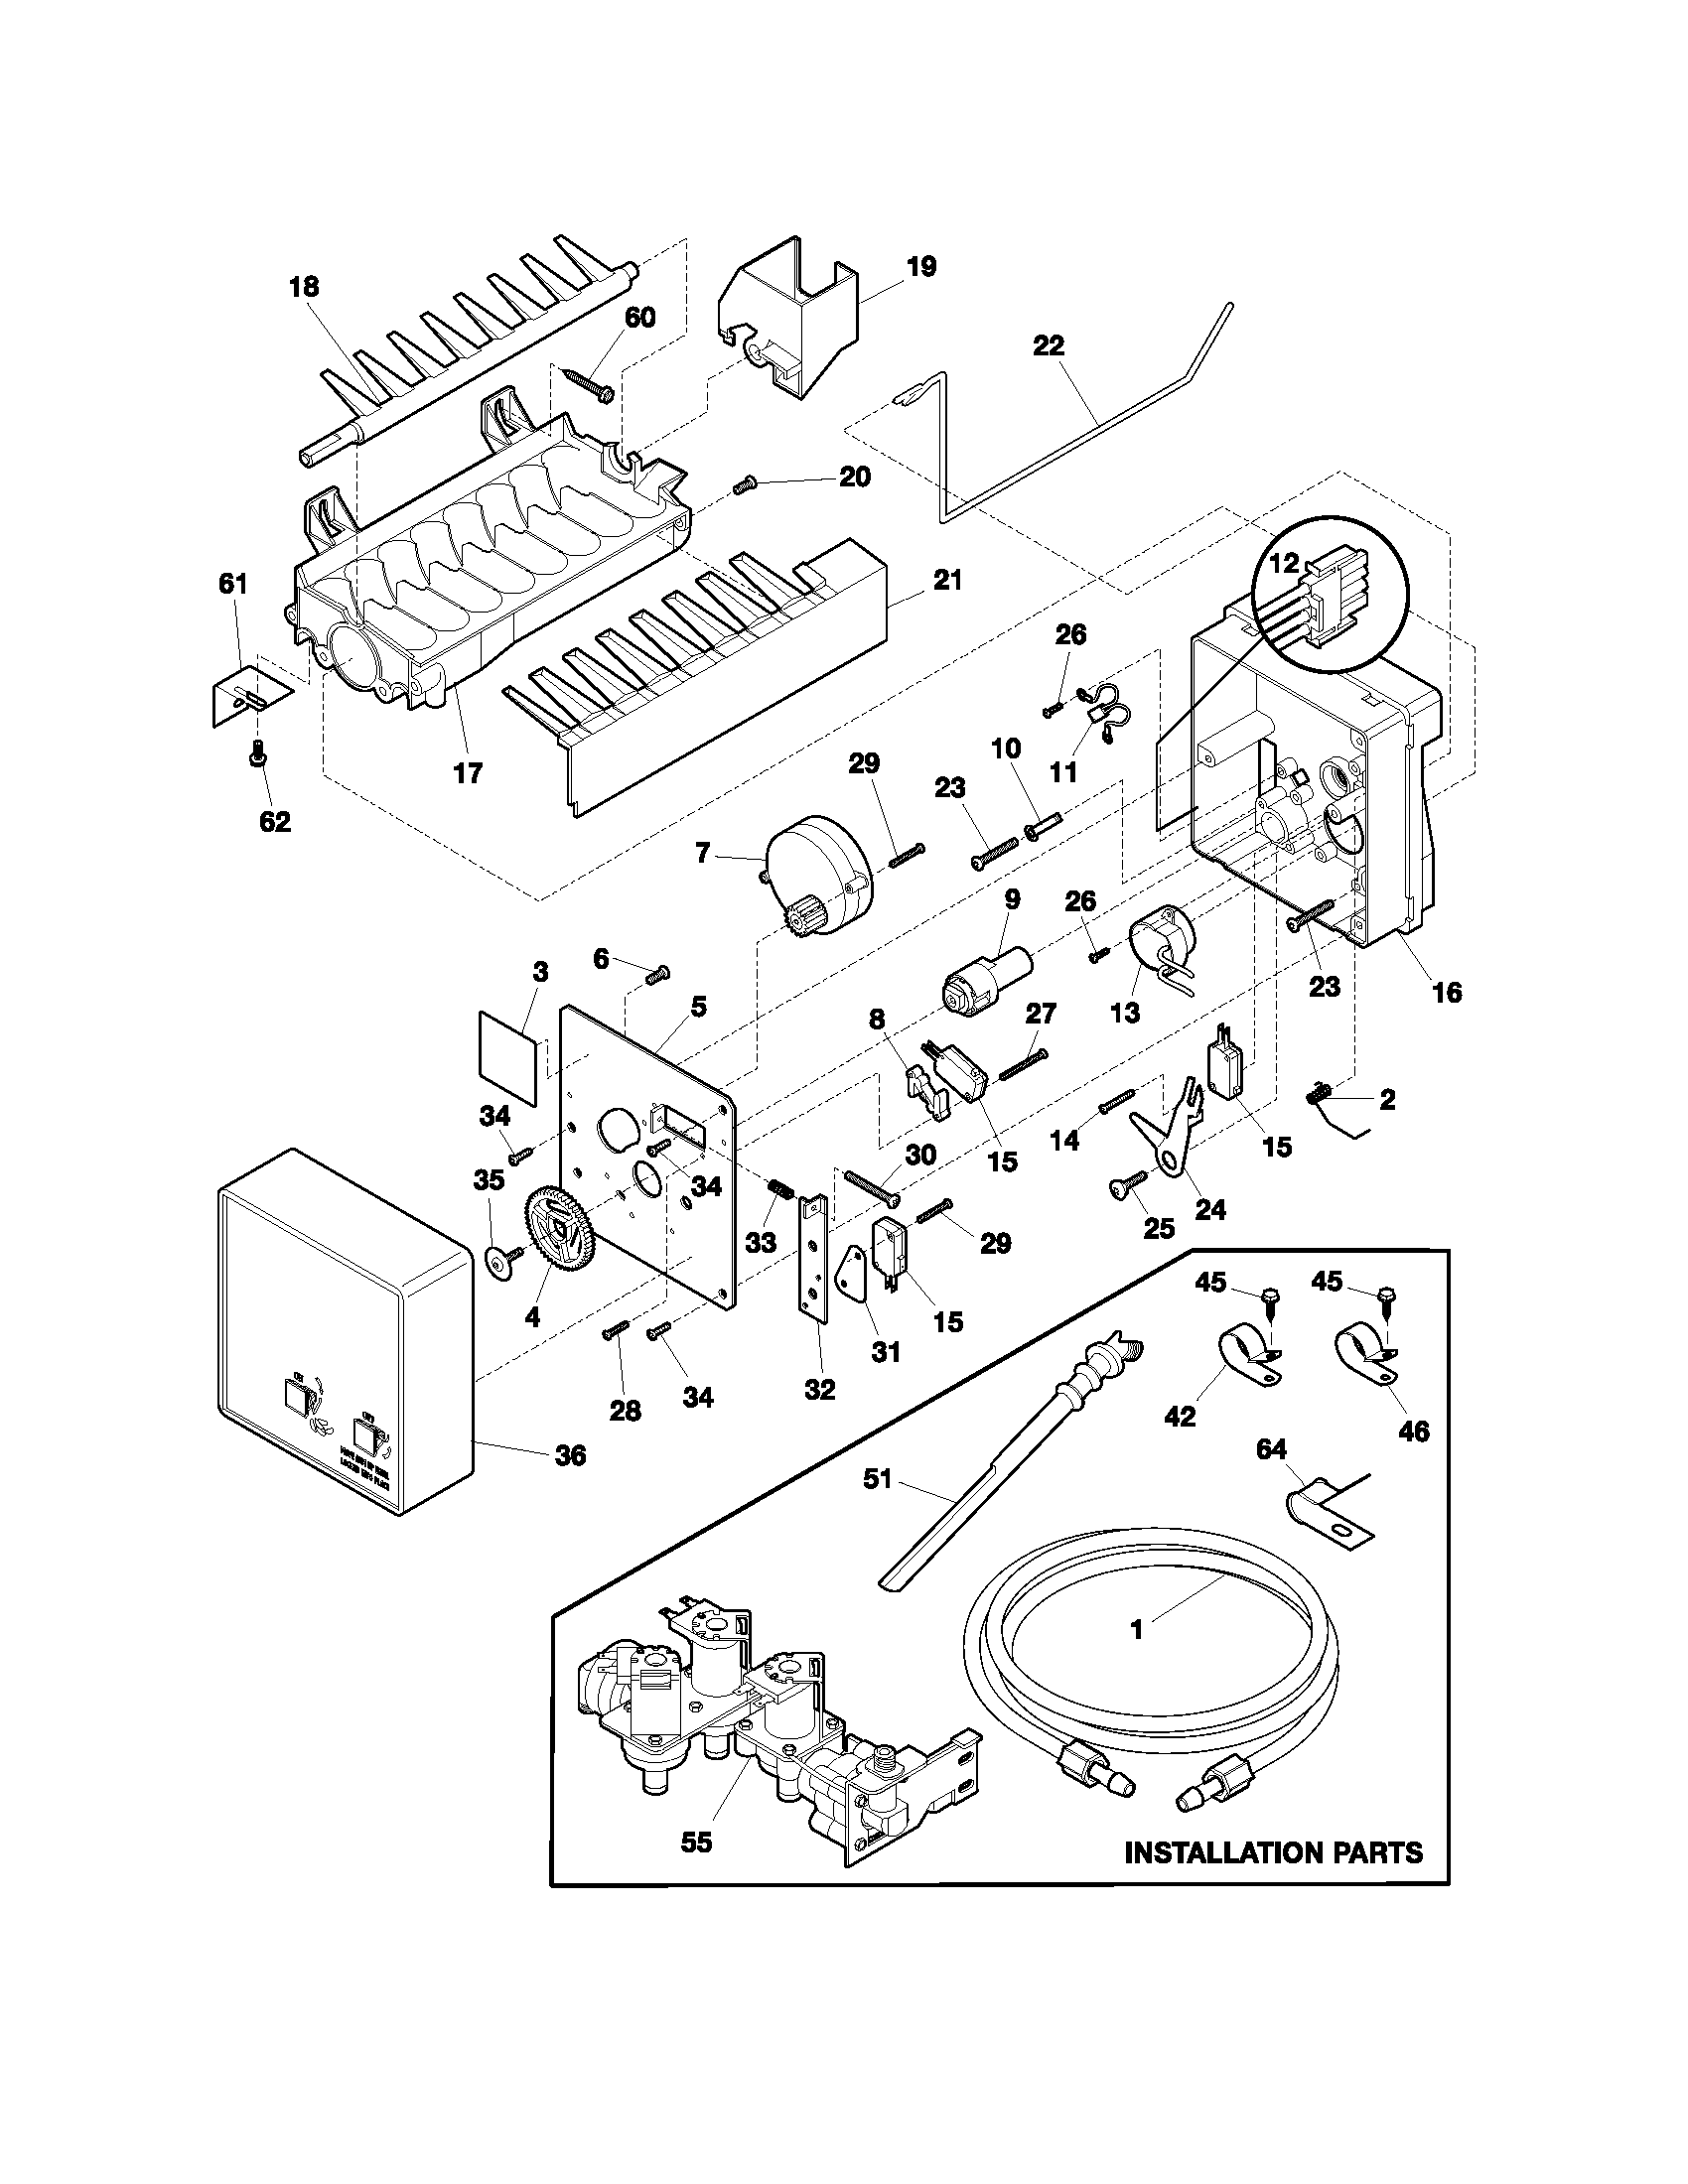 ICE MAKER Diagram & Parts List for Model FRS26R2AWA